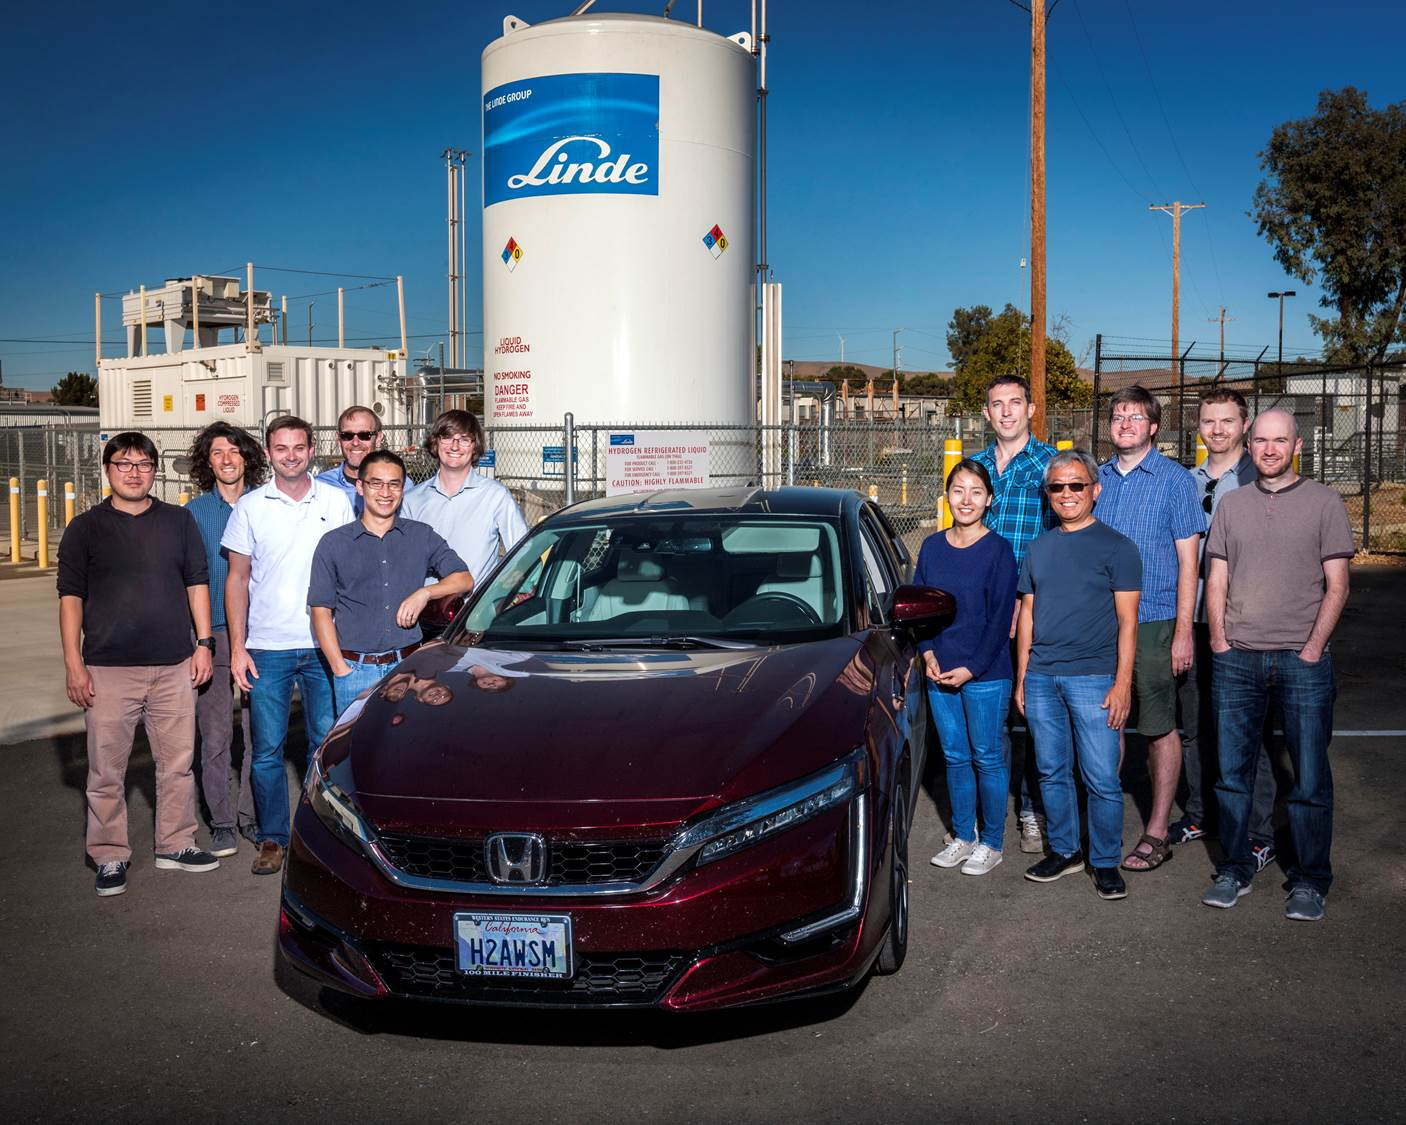 LLNL researchers stand next to a fuel cell vehicle with H2AWSM on the license plate